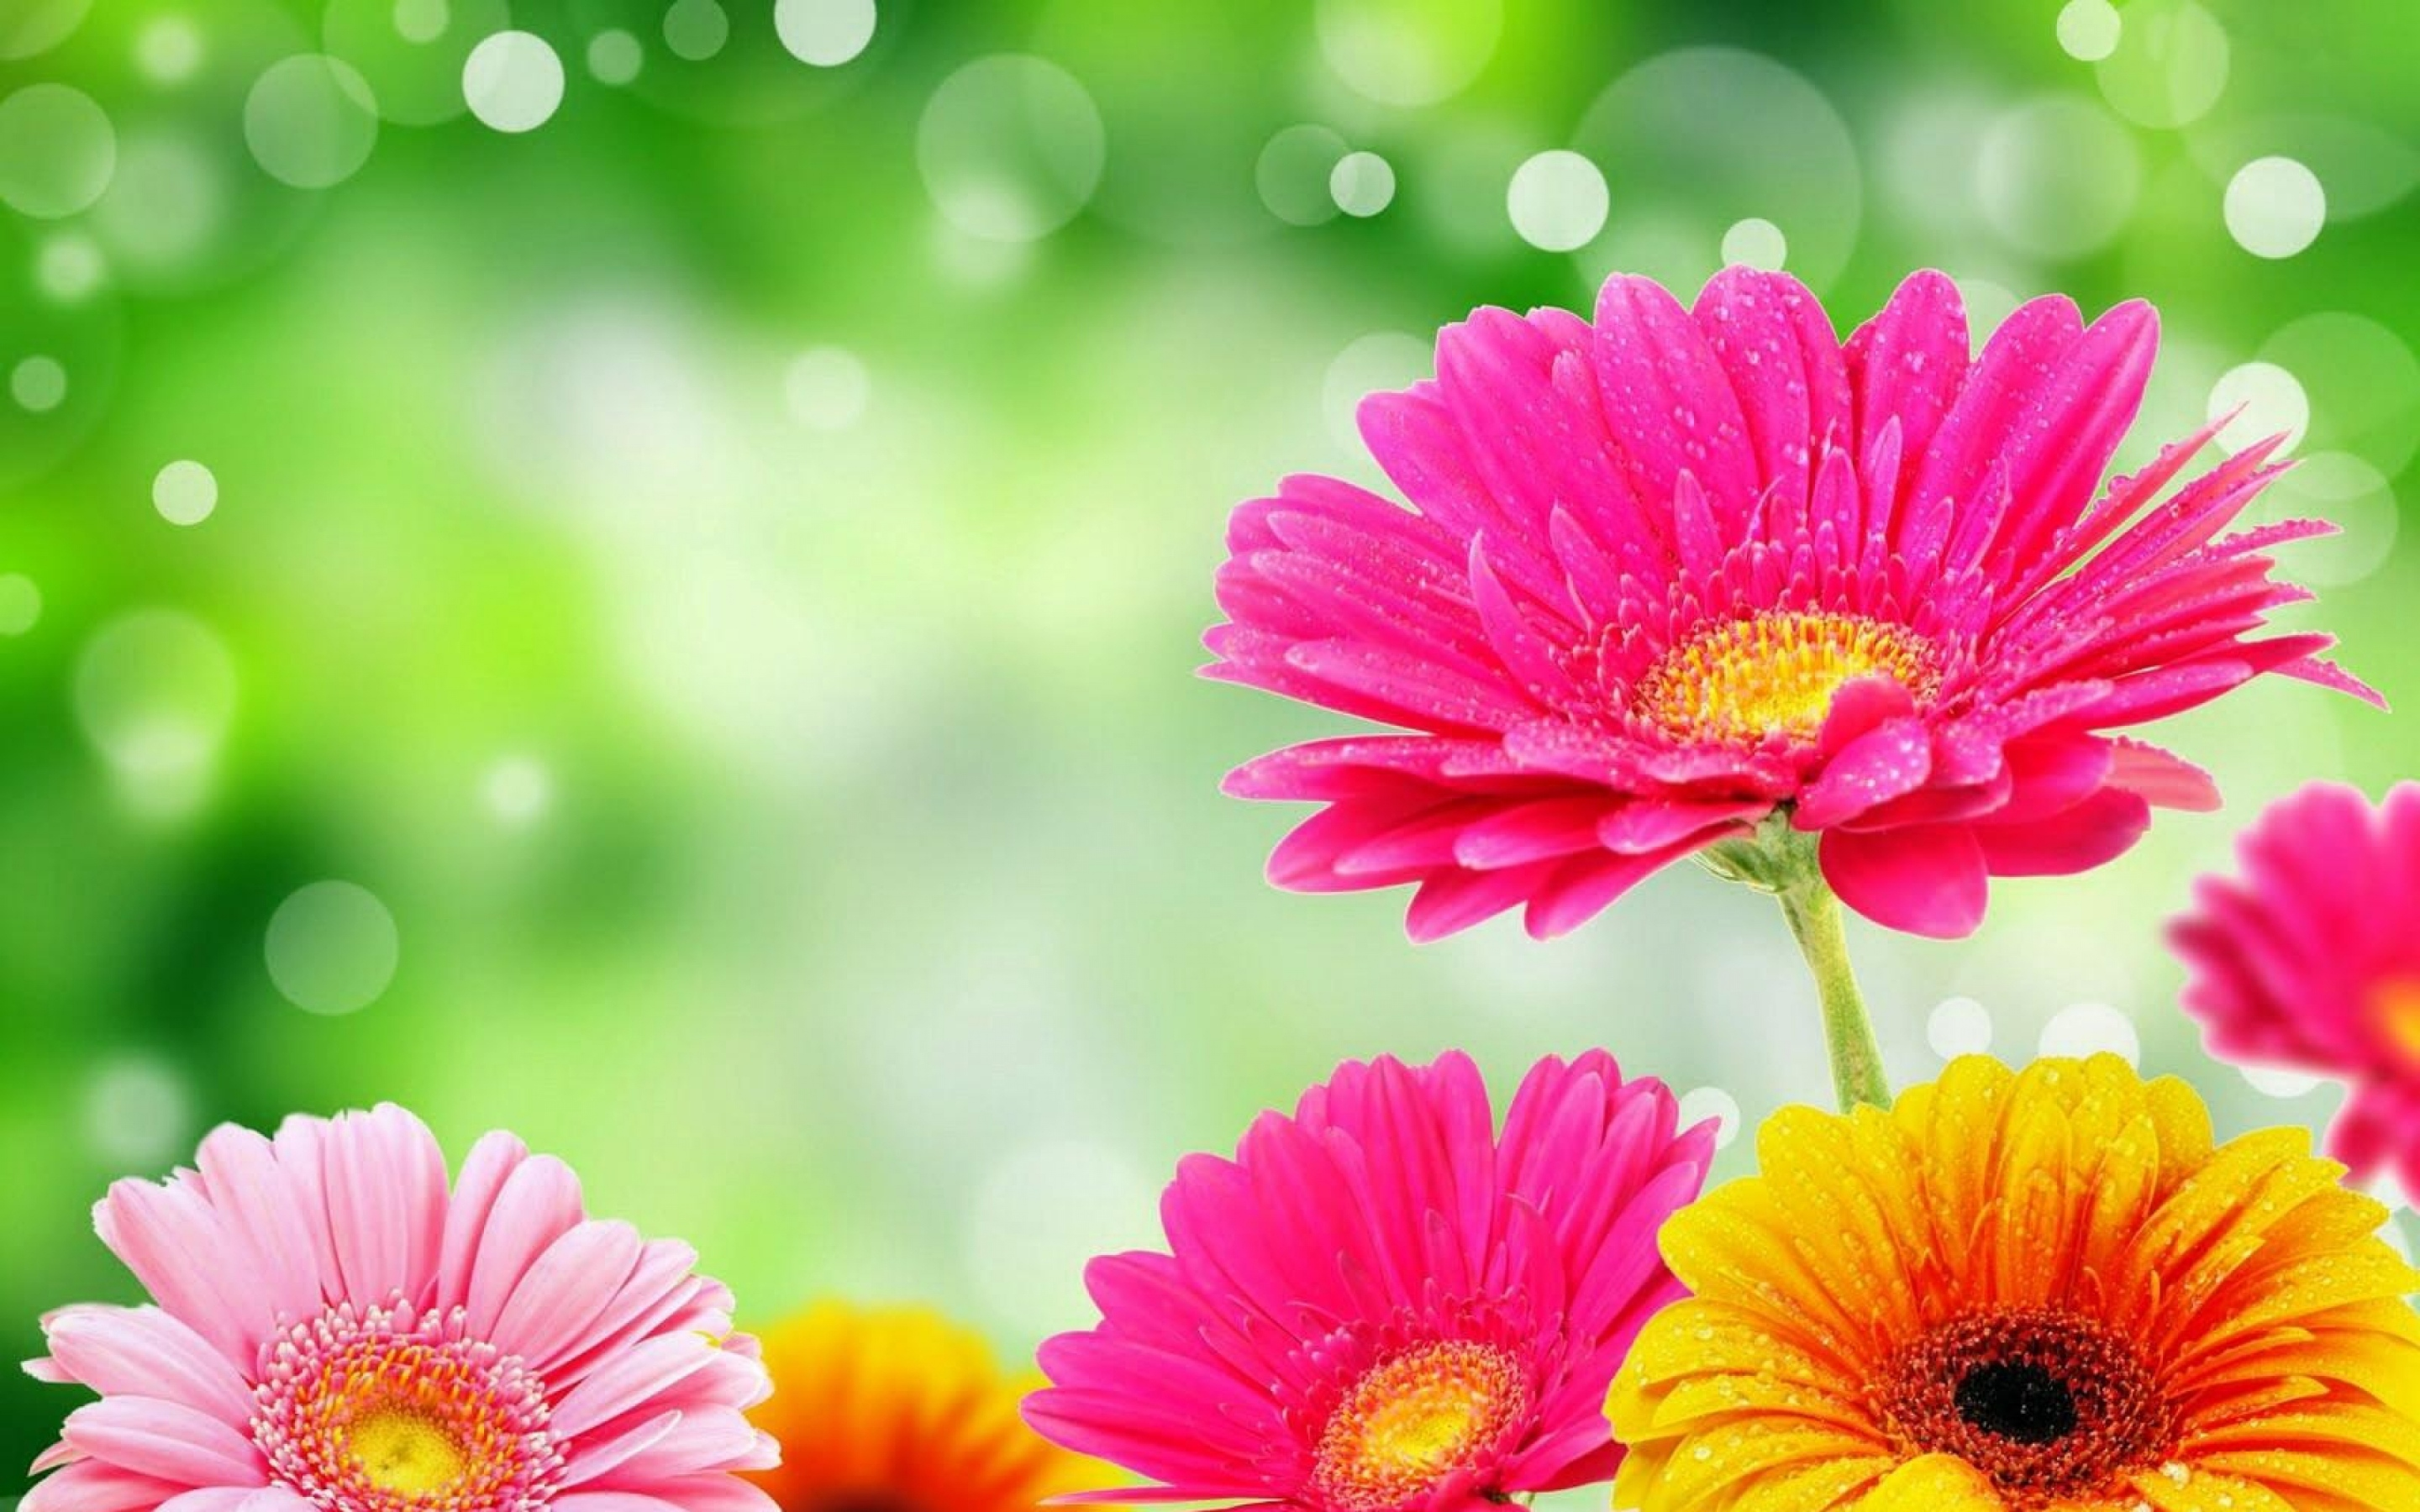 Gerbera Glare Drop Bright Colorful Flowers HD Wallpaper Gerbera Glare Drop Bright Colorful Flowers HD Wallpaper